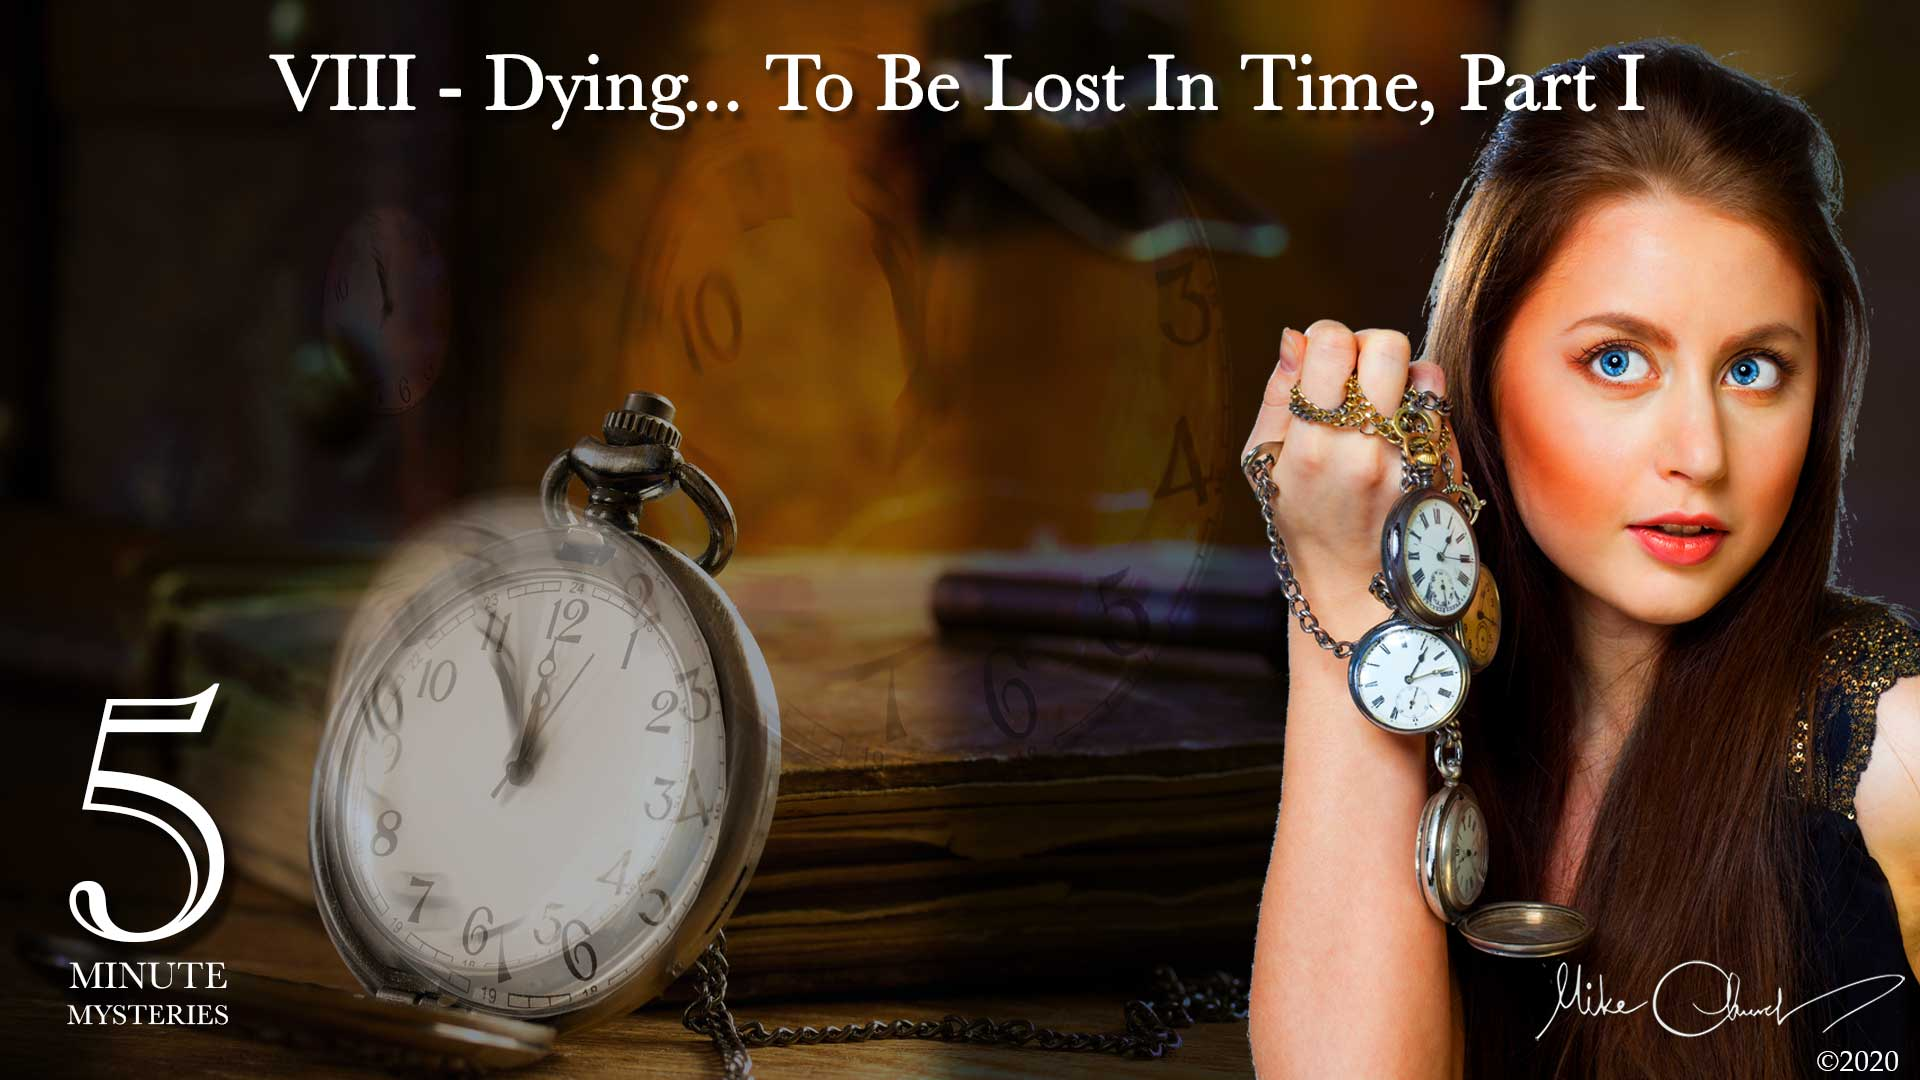 5 Minute Mysteries Episode VIII - Dying...To Be Lost in Time-Part 1